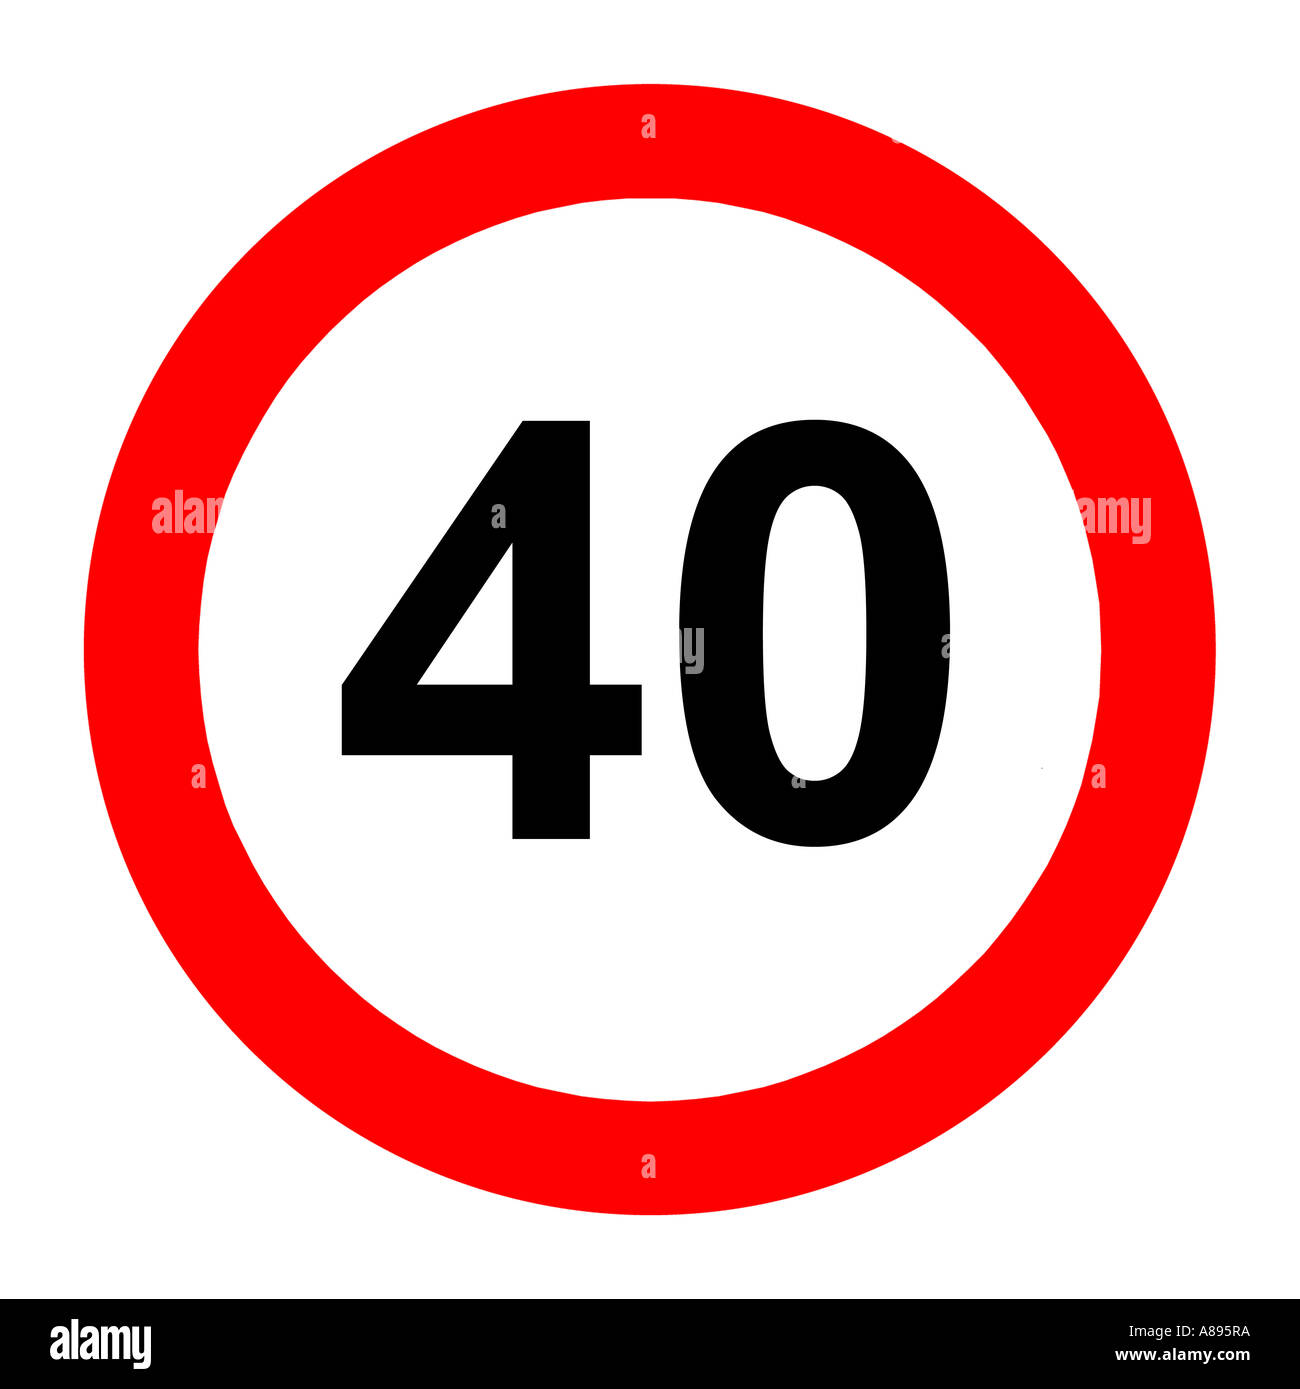 Forty (40) miles per hour speed limit road sign on white background - Stock Image